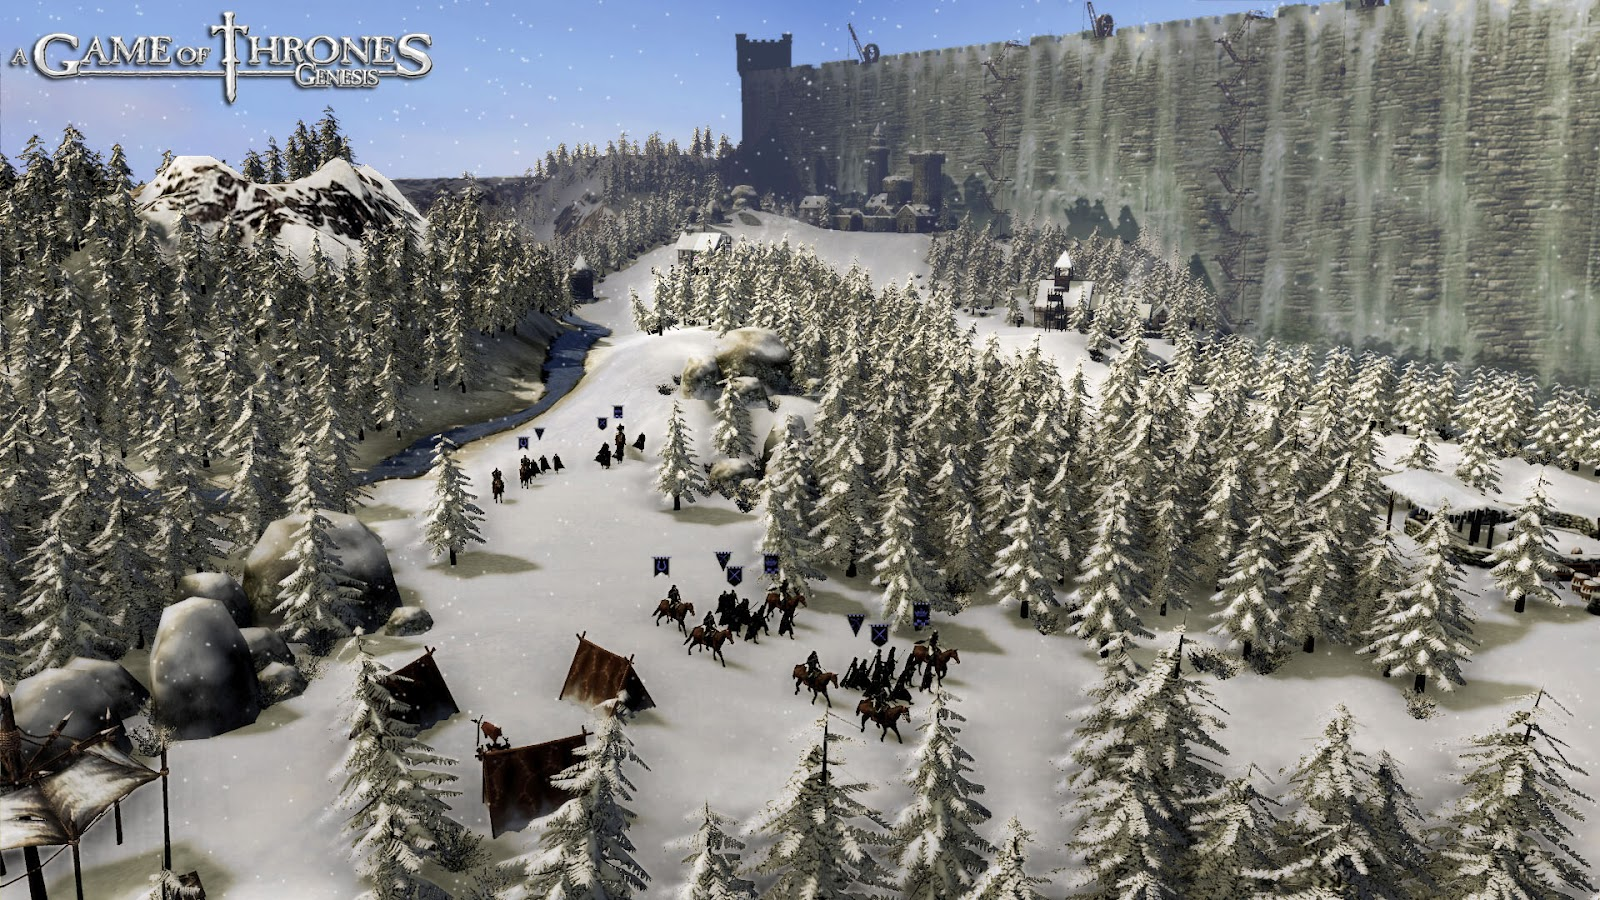 Wallpapers A Game Of Thrones Genesis Ice Wall Kingsroad